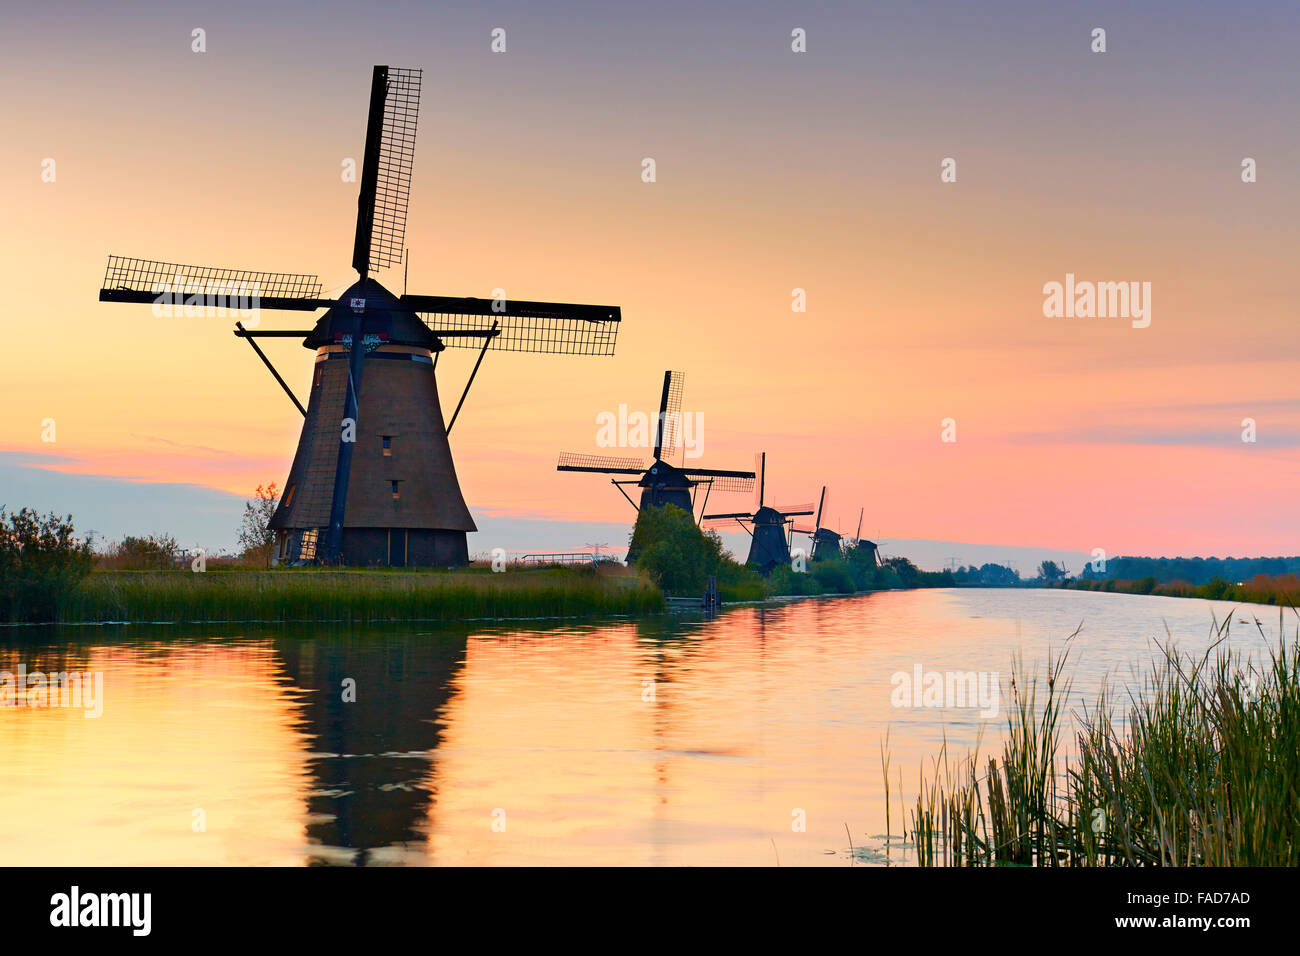 windm hlen von kinderdijk bei sonnenaufgang holland niederlande stockfoto bild 92489557 alamy. Black Bedroom Furniture Sets. Home Design Ideas